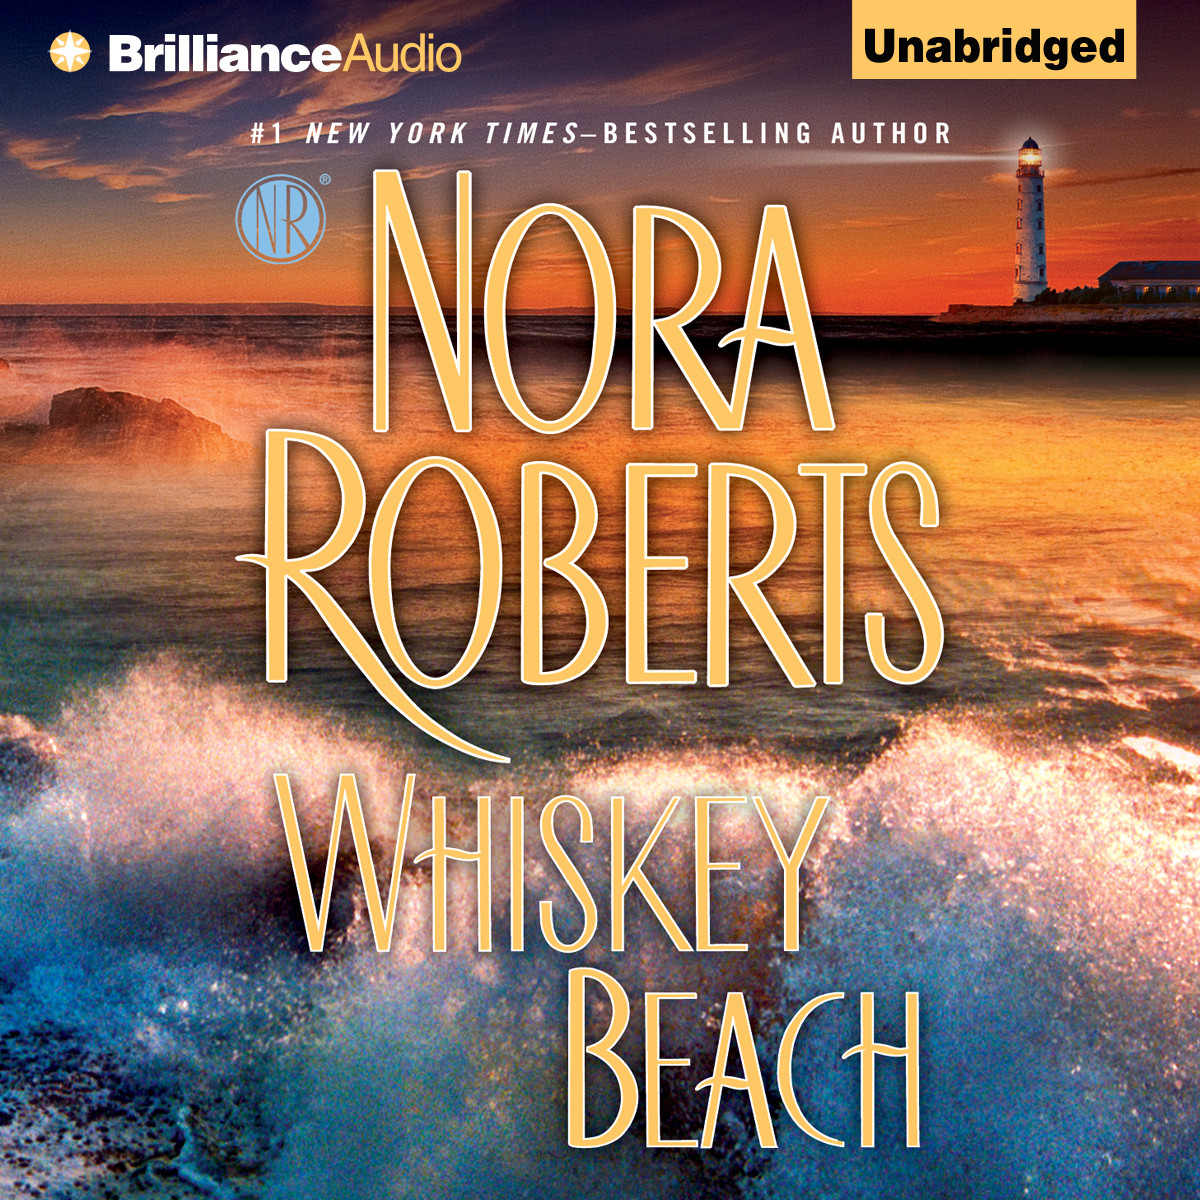 Hear Whiskey Beach Audiobook by Nora Roberts for just $5.95